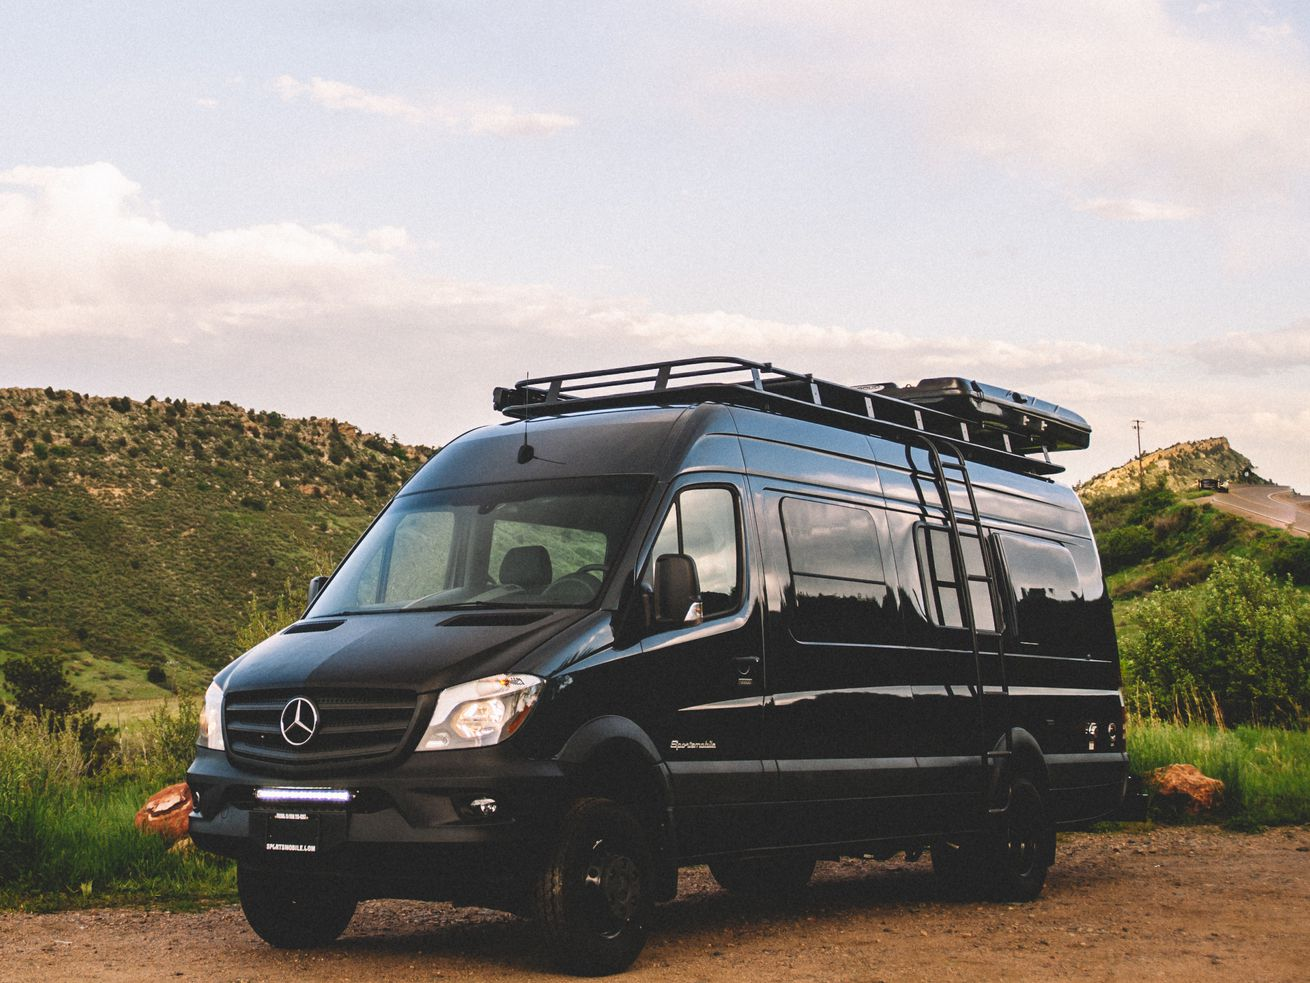 """In my <a class=""""ql-link"""" href=""""https://www.curbed.com/2018/7/11/17550142/camper-van-conversion-vanlife-sportsmobile"""" target=""""_blank"""">custom Sportsmobile Sprinter</a>, the microwave is one of the van's most-used features."""